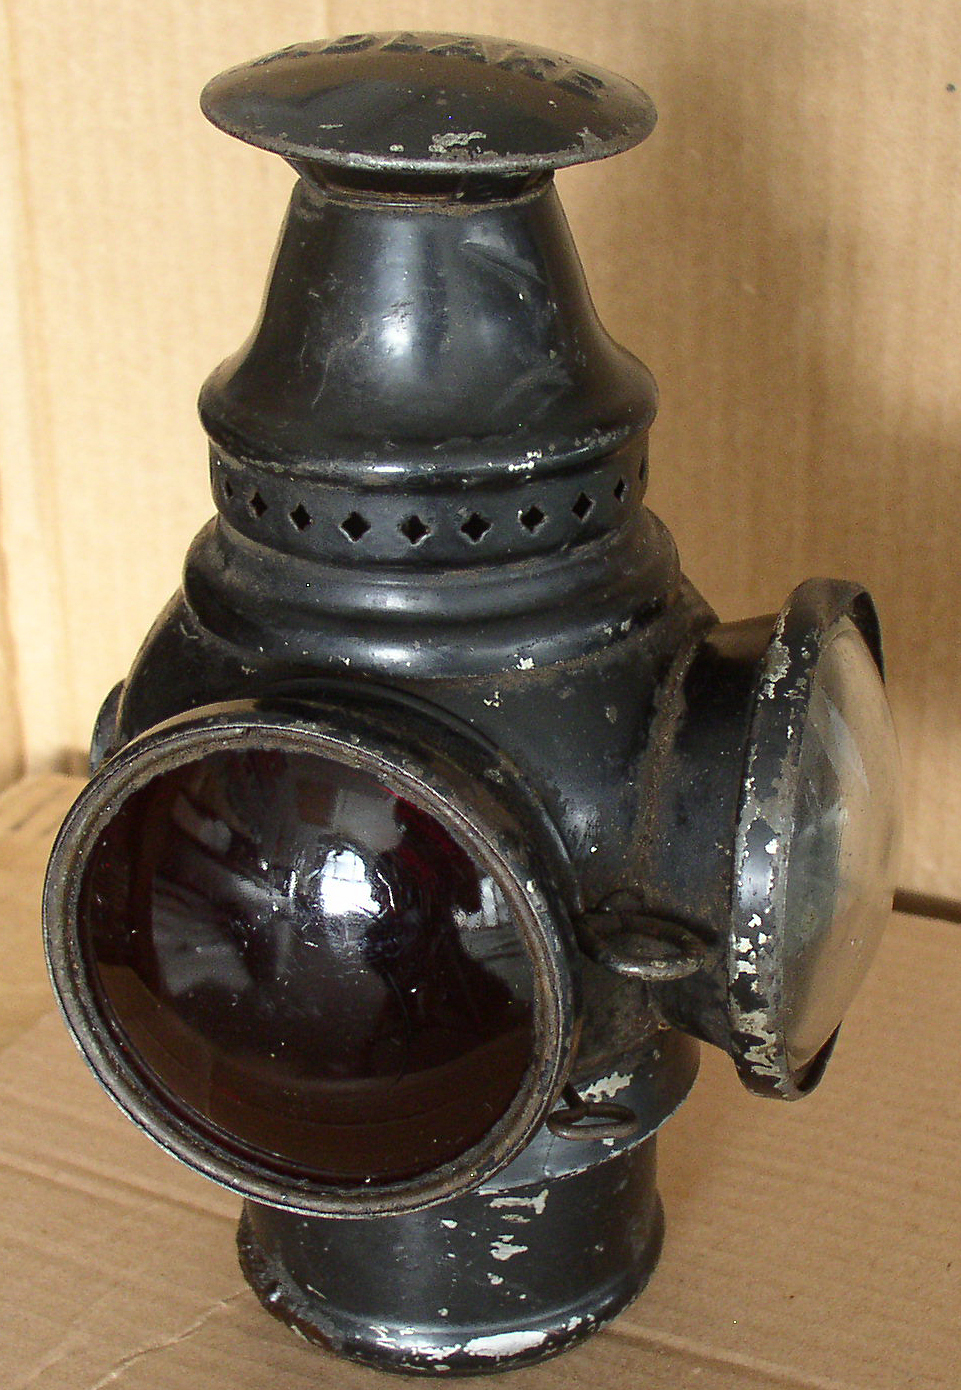 Adlake Oil Lantern Lamp Buggy Thingery Previews